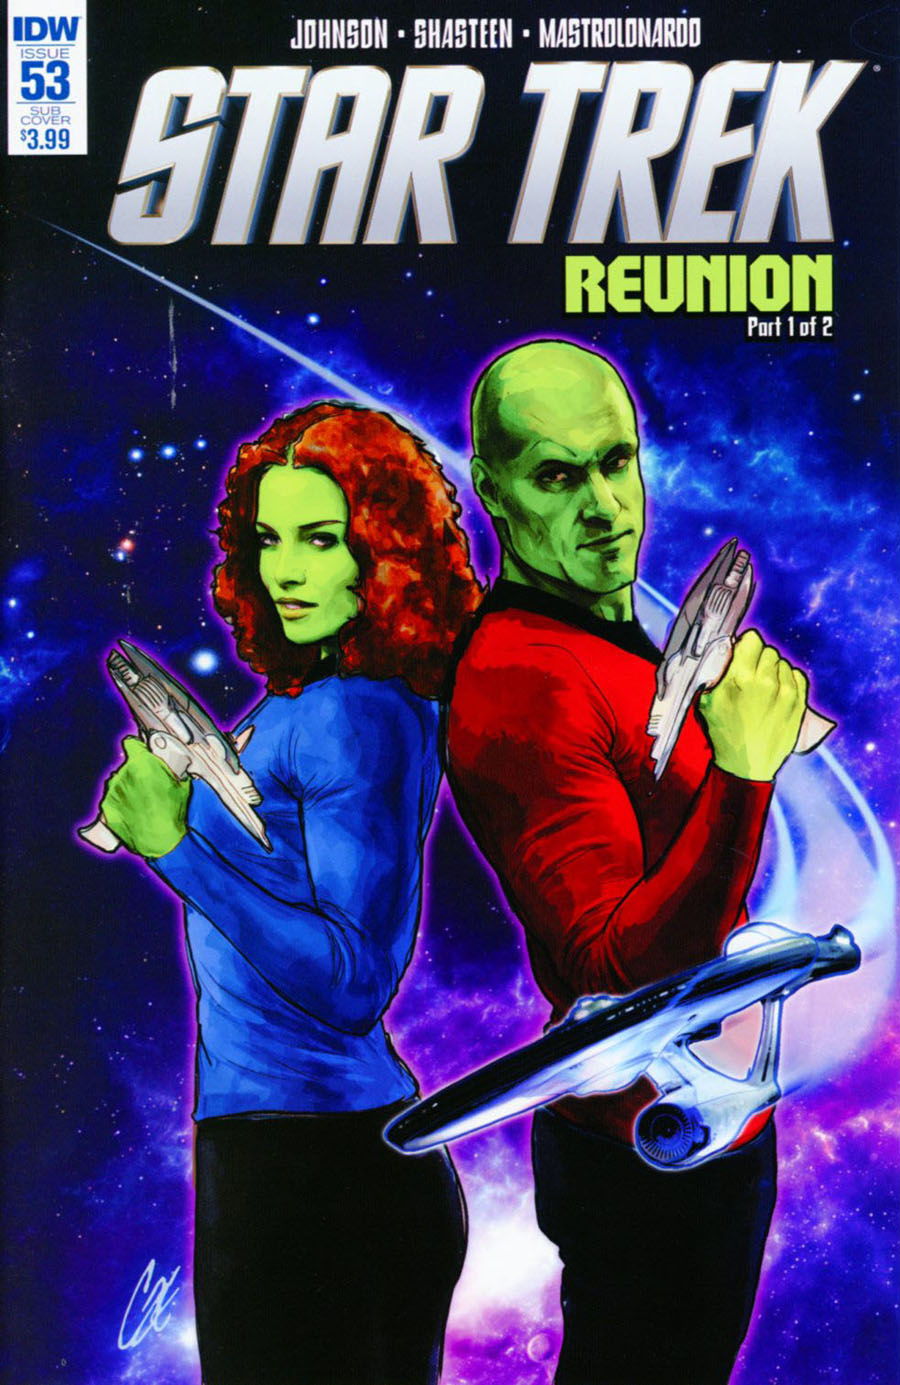 Star Trek (IDW) #53 Cover B Variant Cat Staggs Subscription Cover